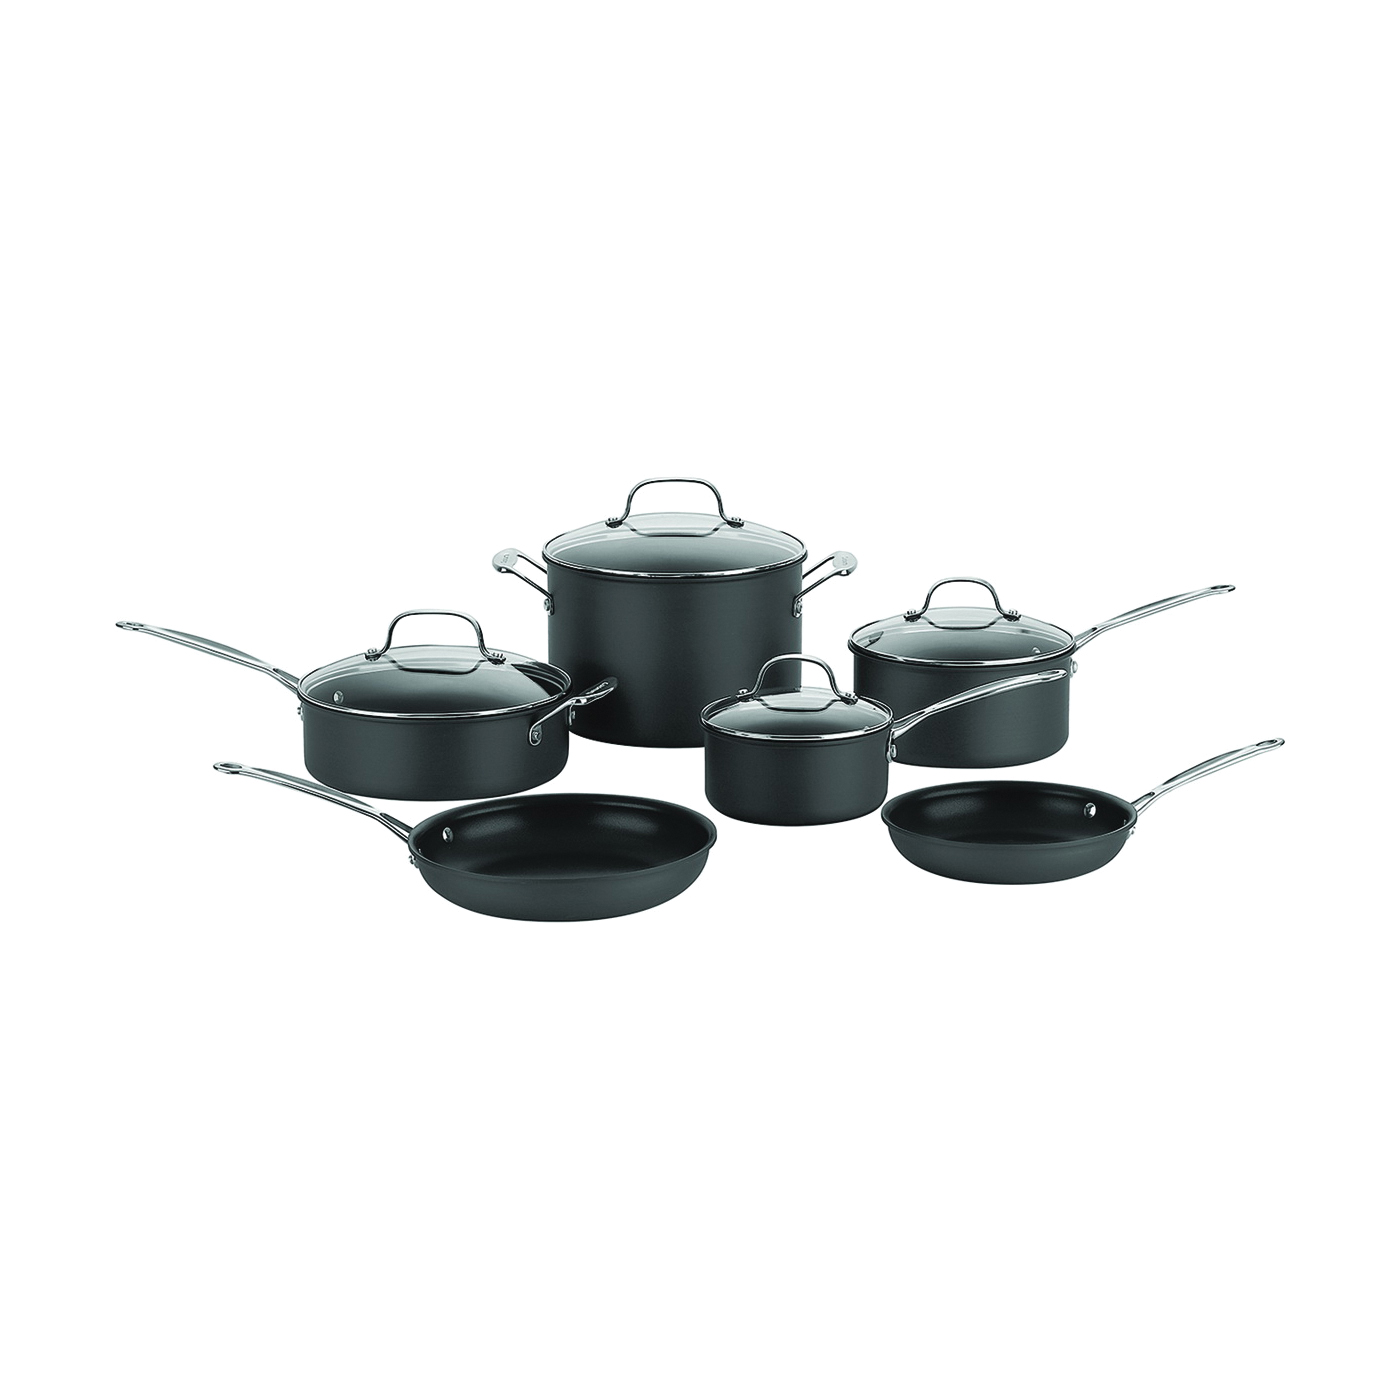 Picture of Cuisinart Chef's Classic 66-10 Cookware Set, 10-Piece